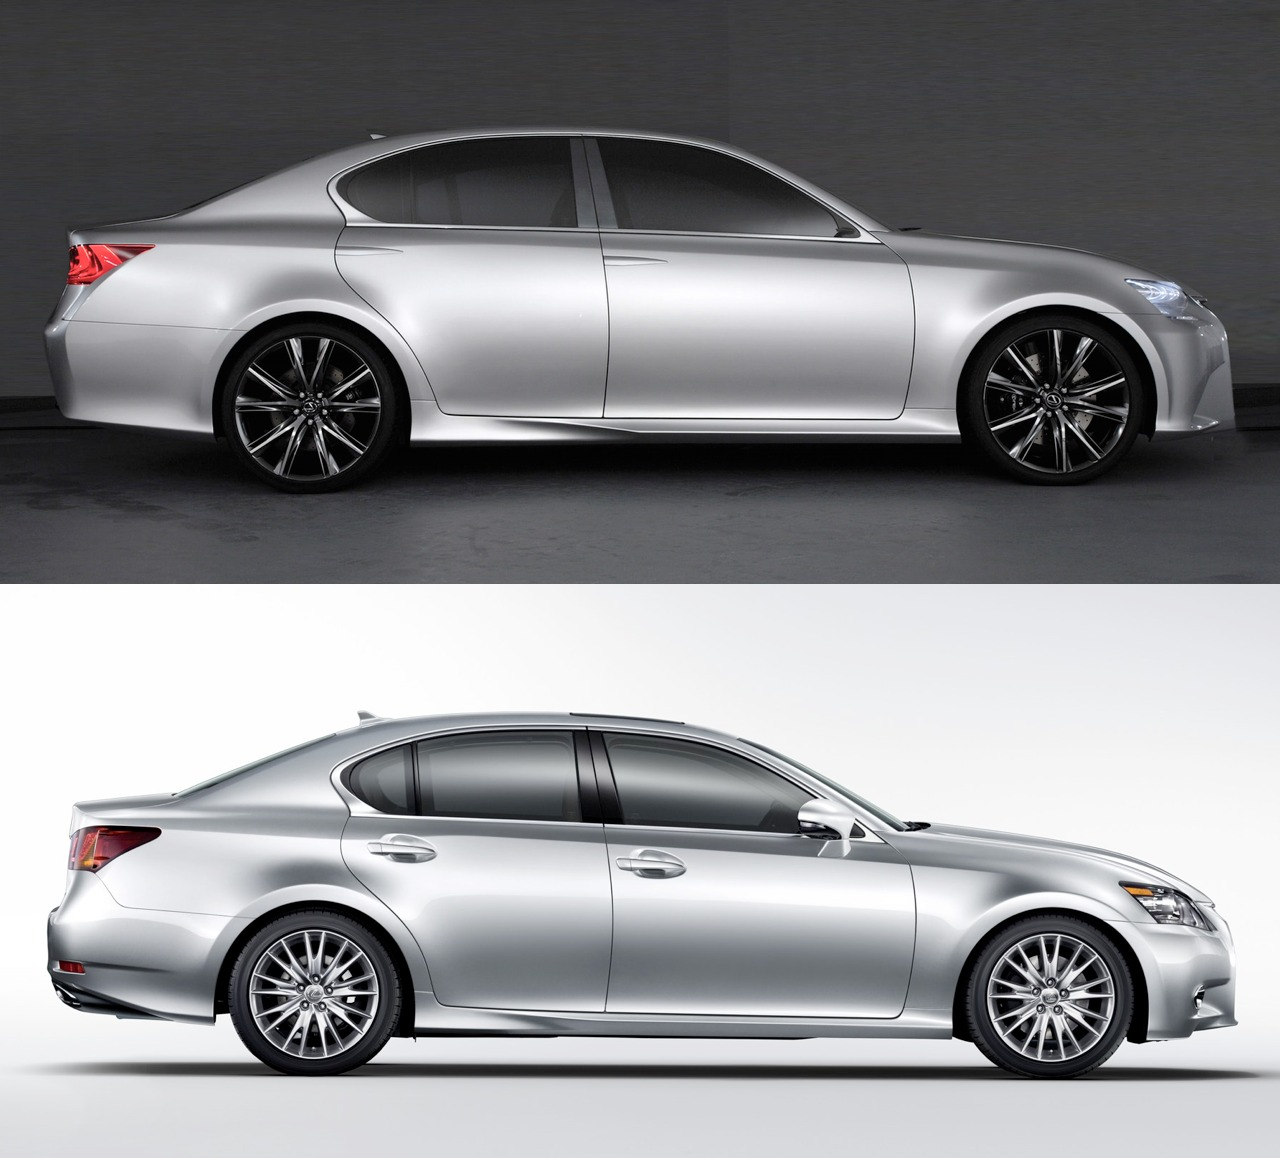 Beautiful 2013 Lexus GS Vs LF Gh Concept